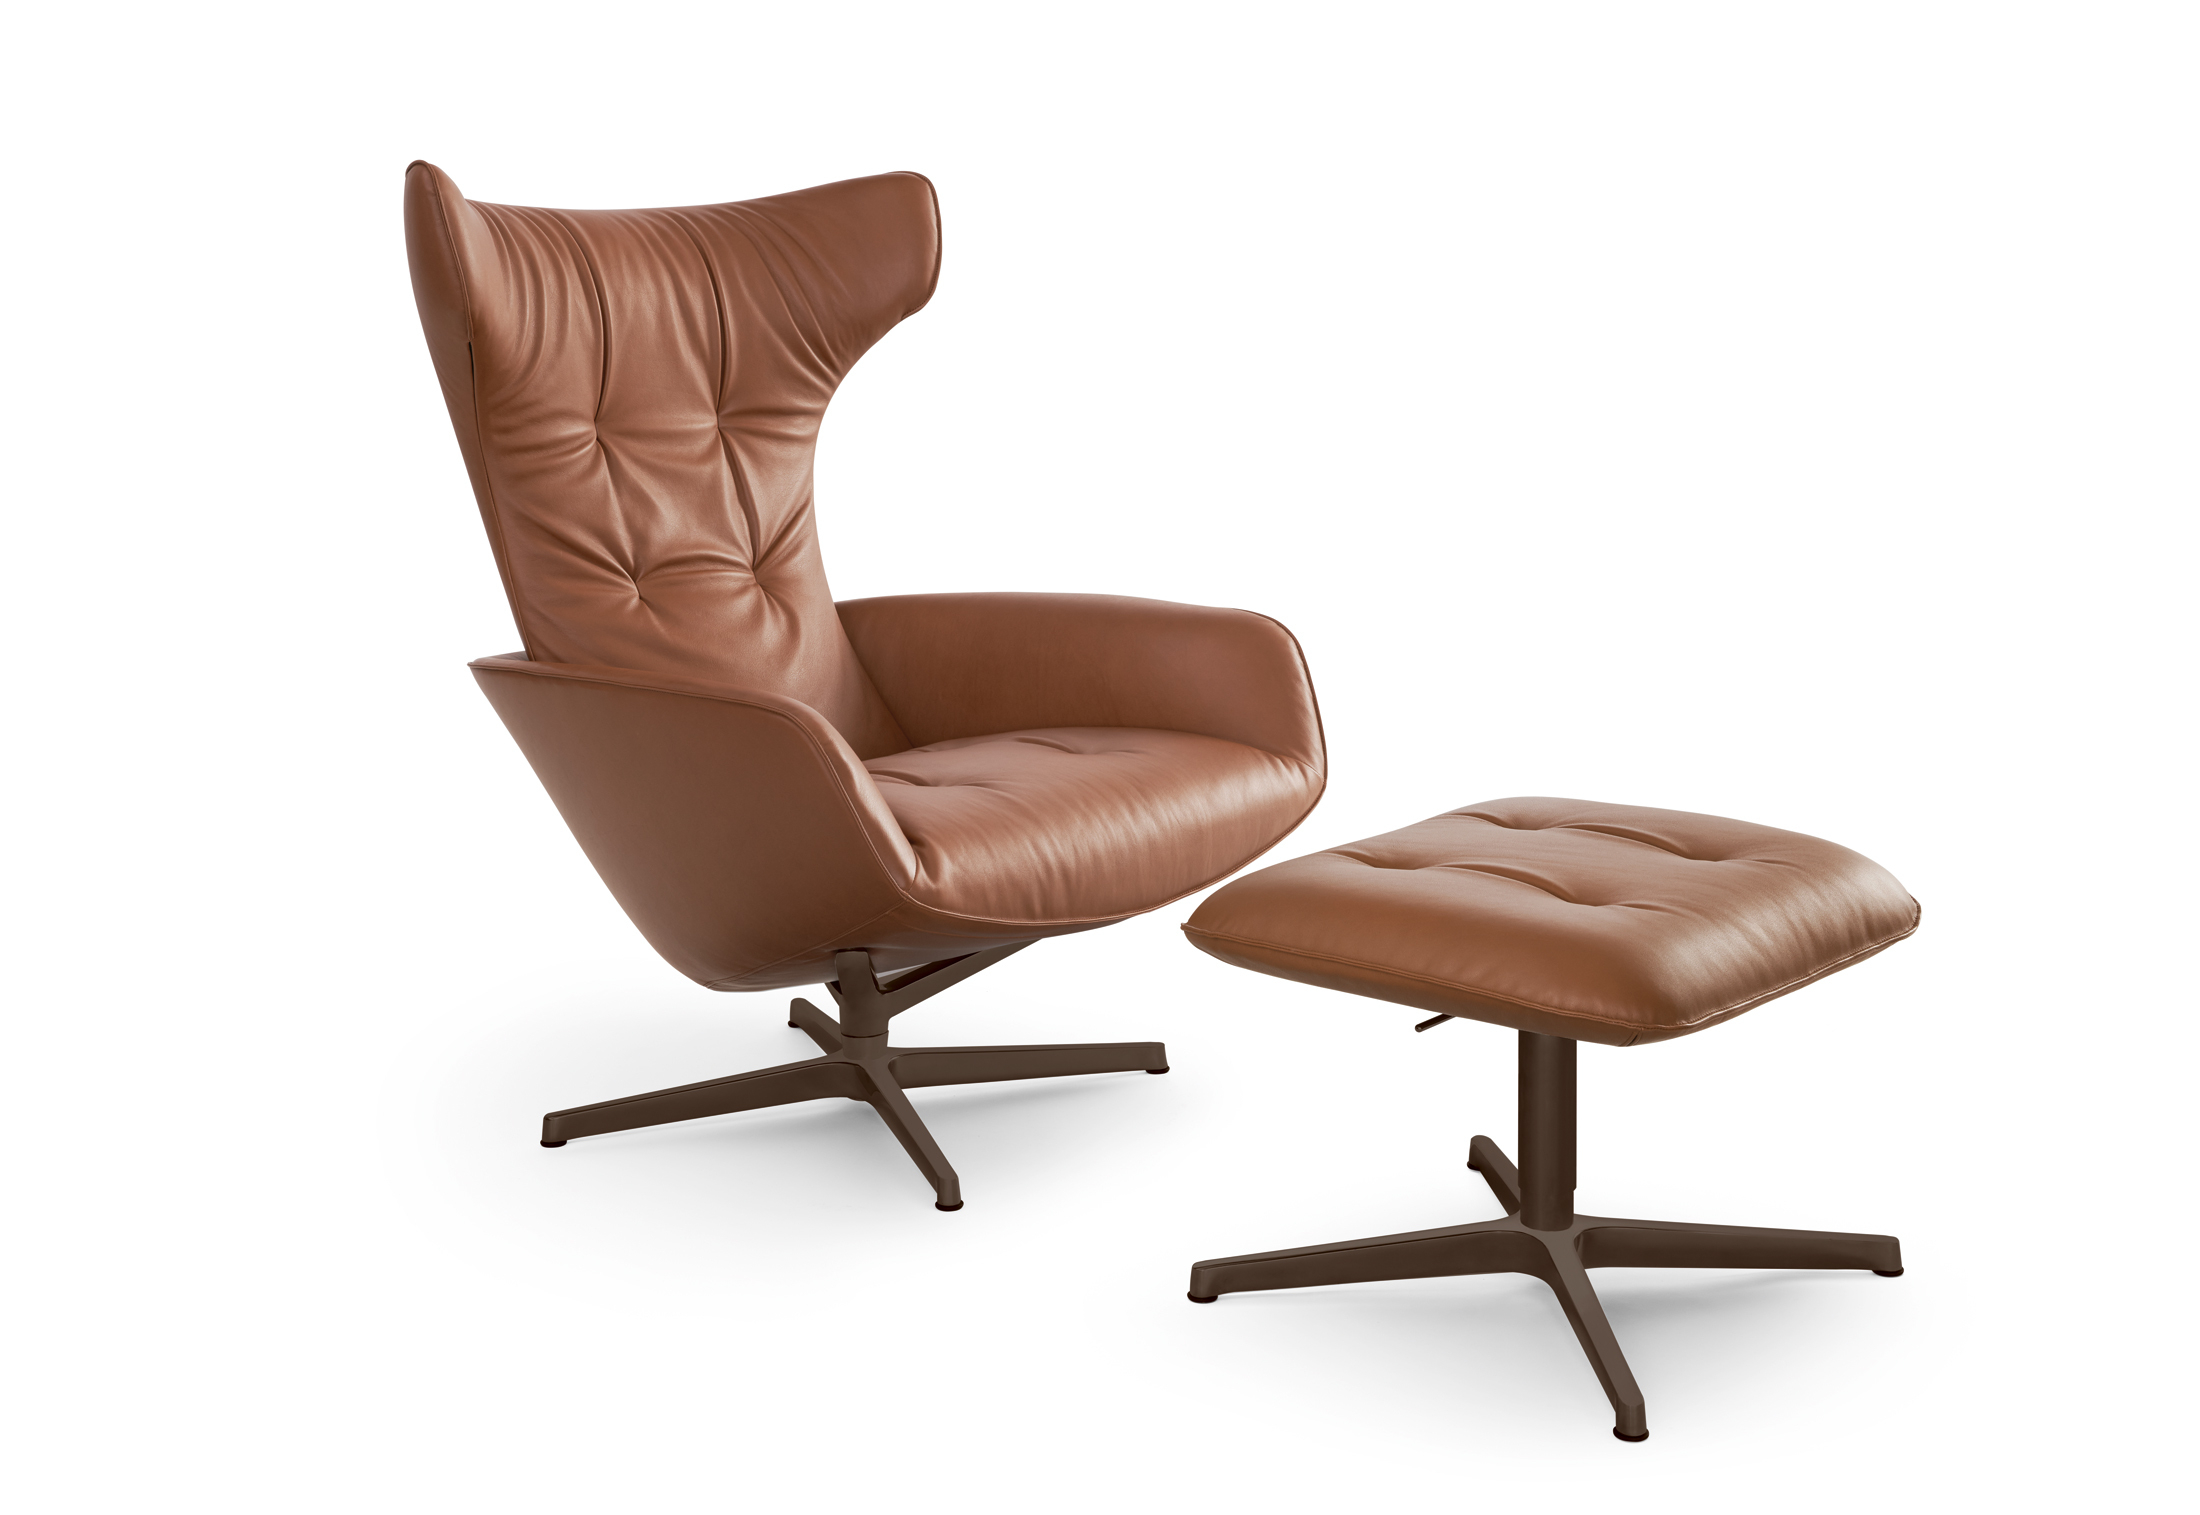 Onsa Chairwalter Knoll | Stylepark With Regard To Walter Leather Sofa Chairs (Image 7 of 20)